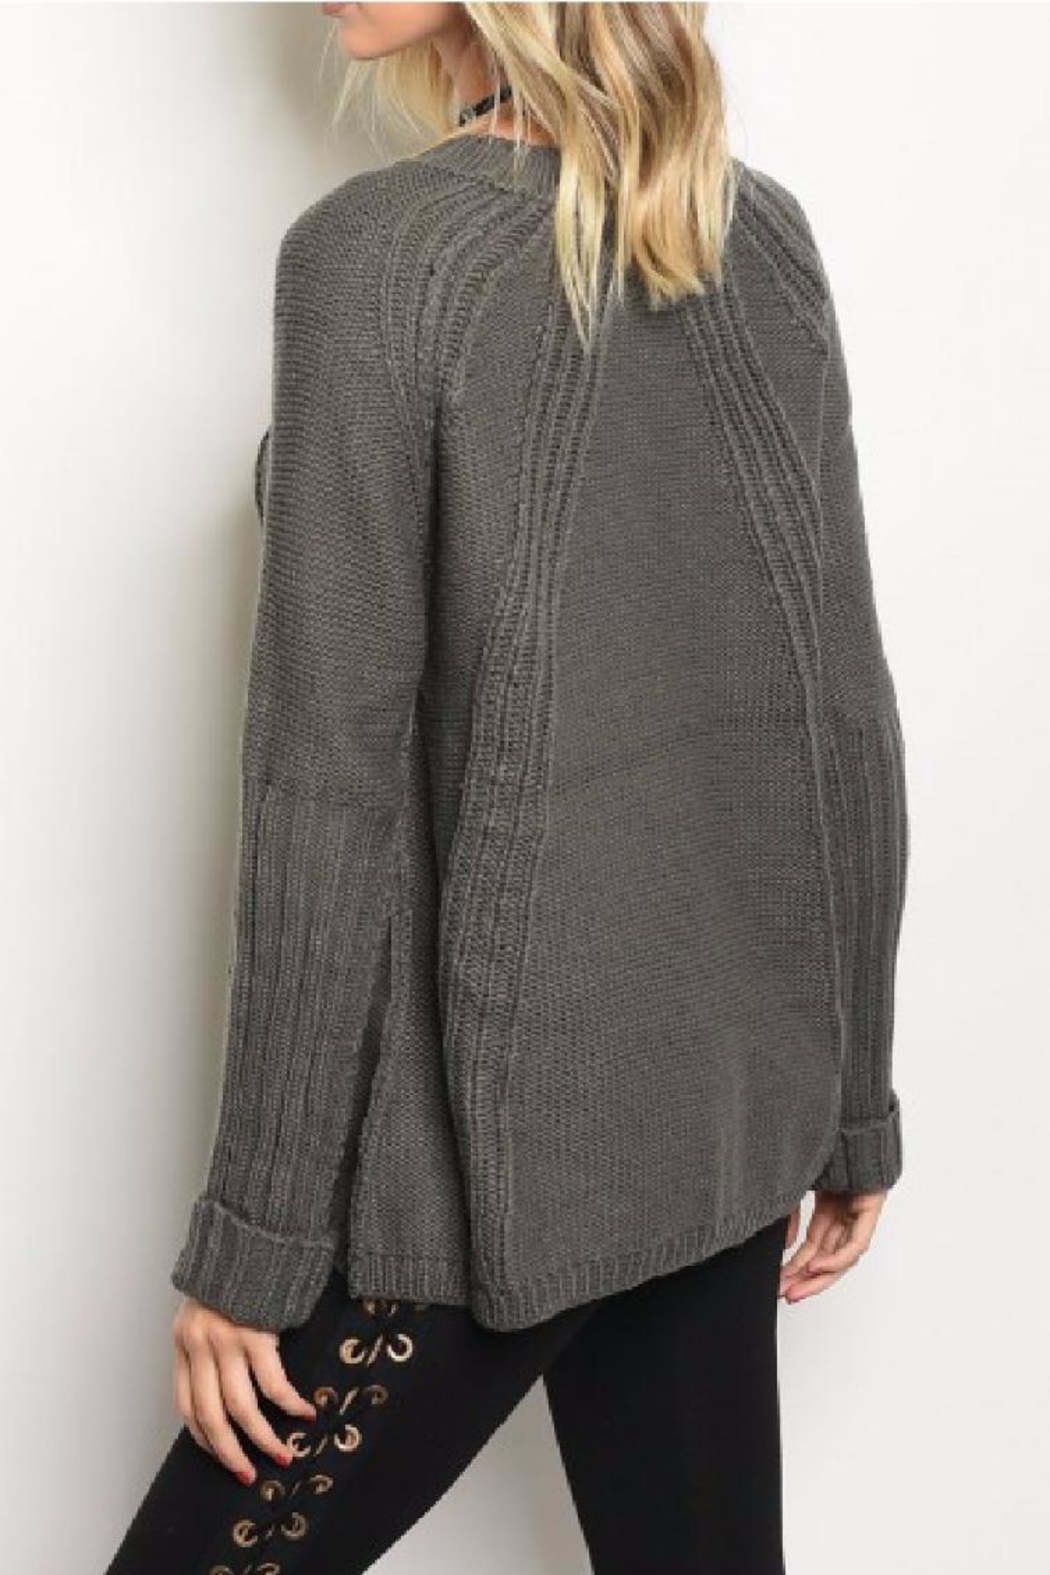 LoveRiche Chunky Knit Sweater - Front Full Image